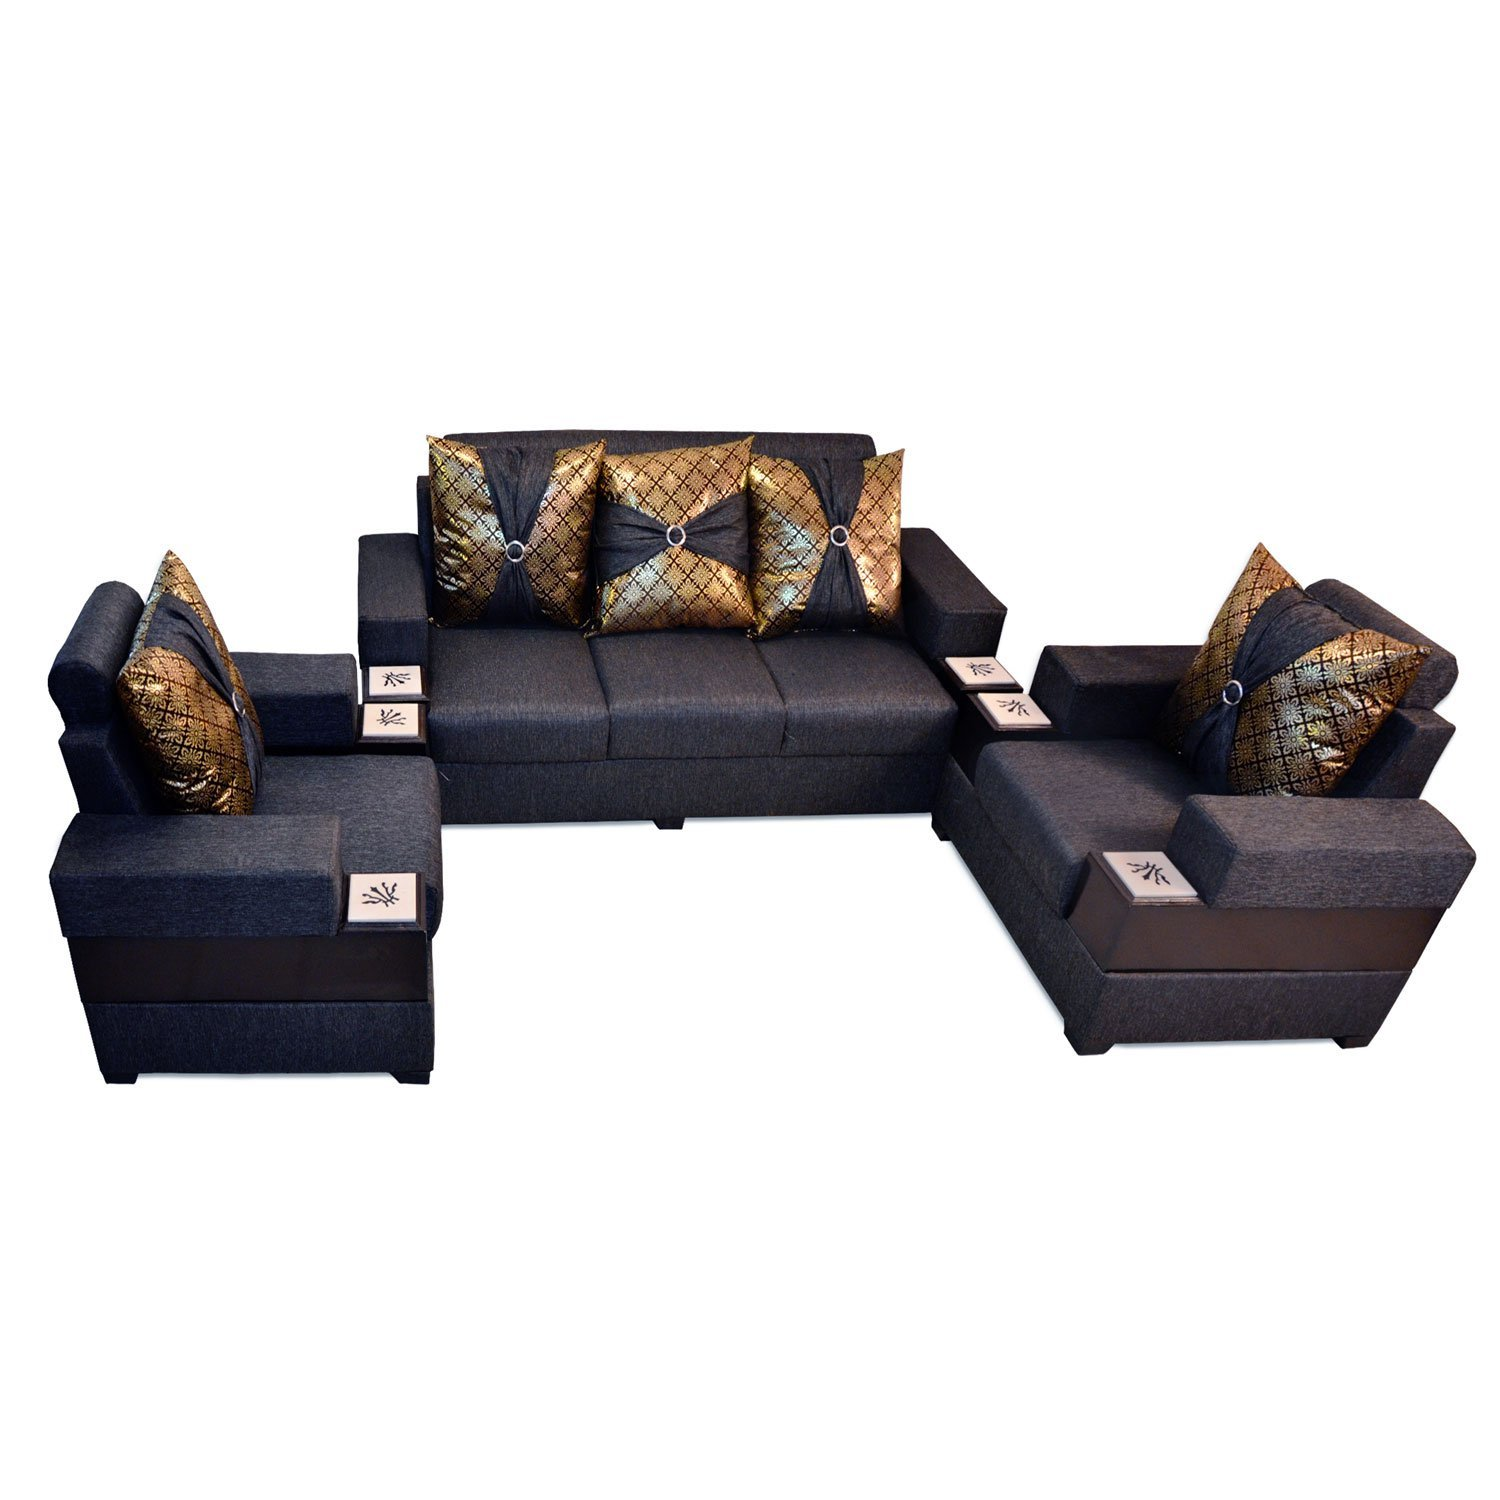 5 seater most affordable sofa set 3 1 1 sofa set dark for Most affordable furniture